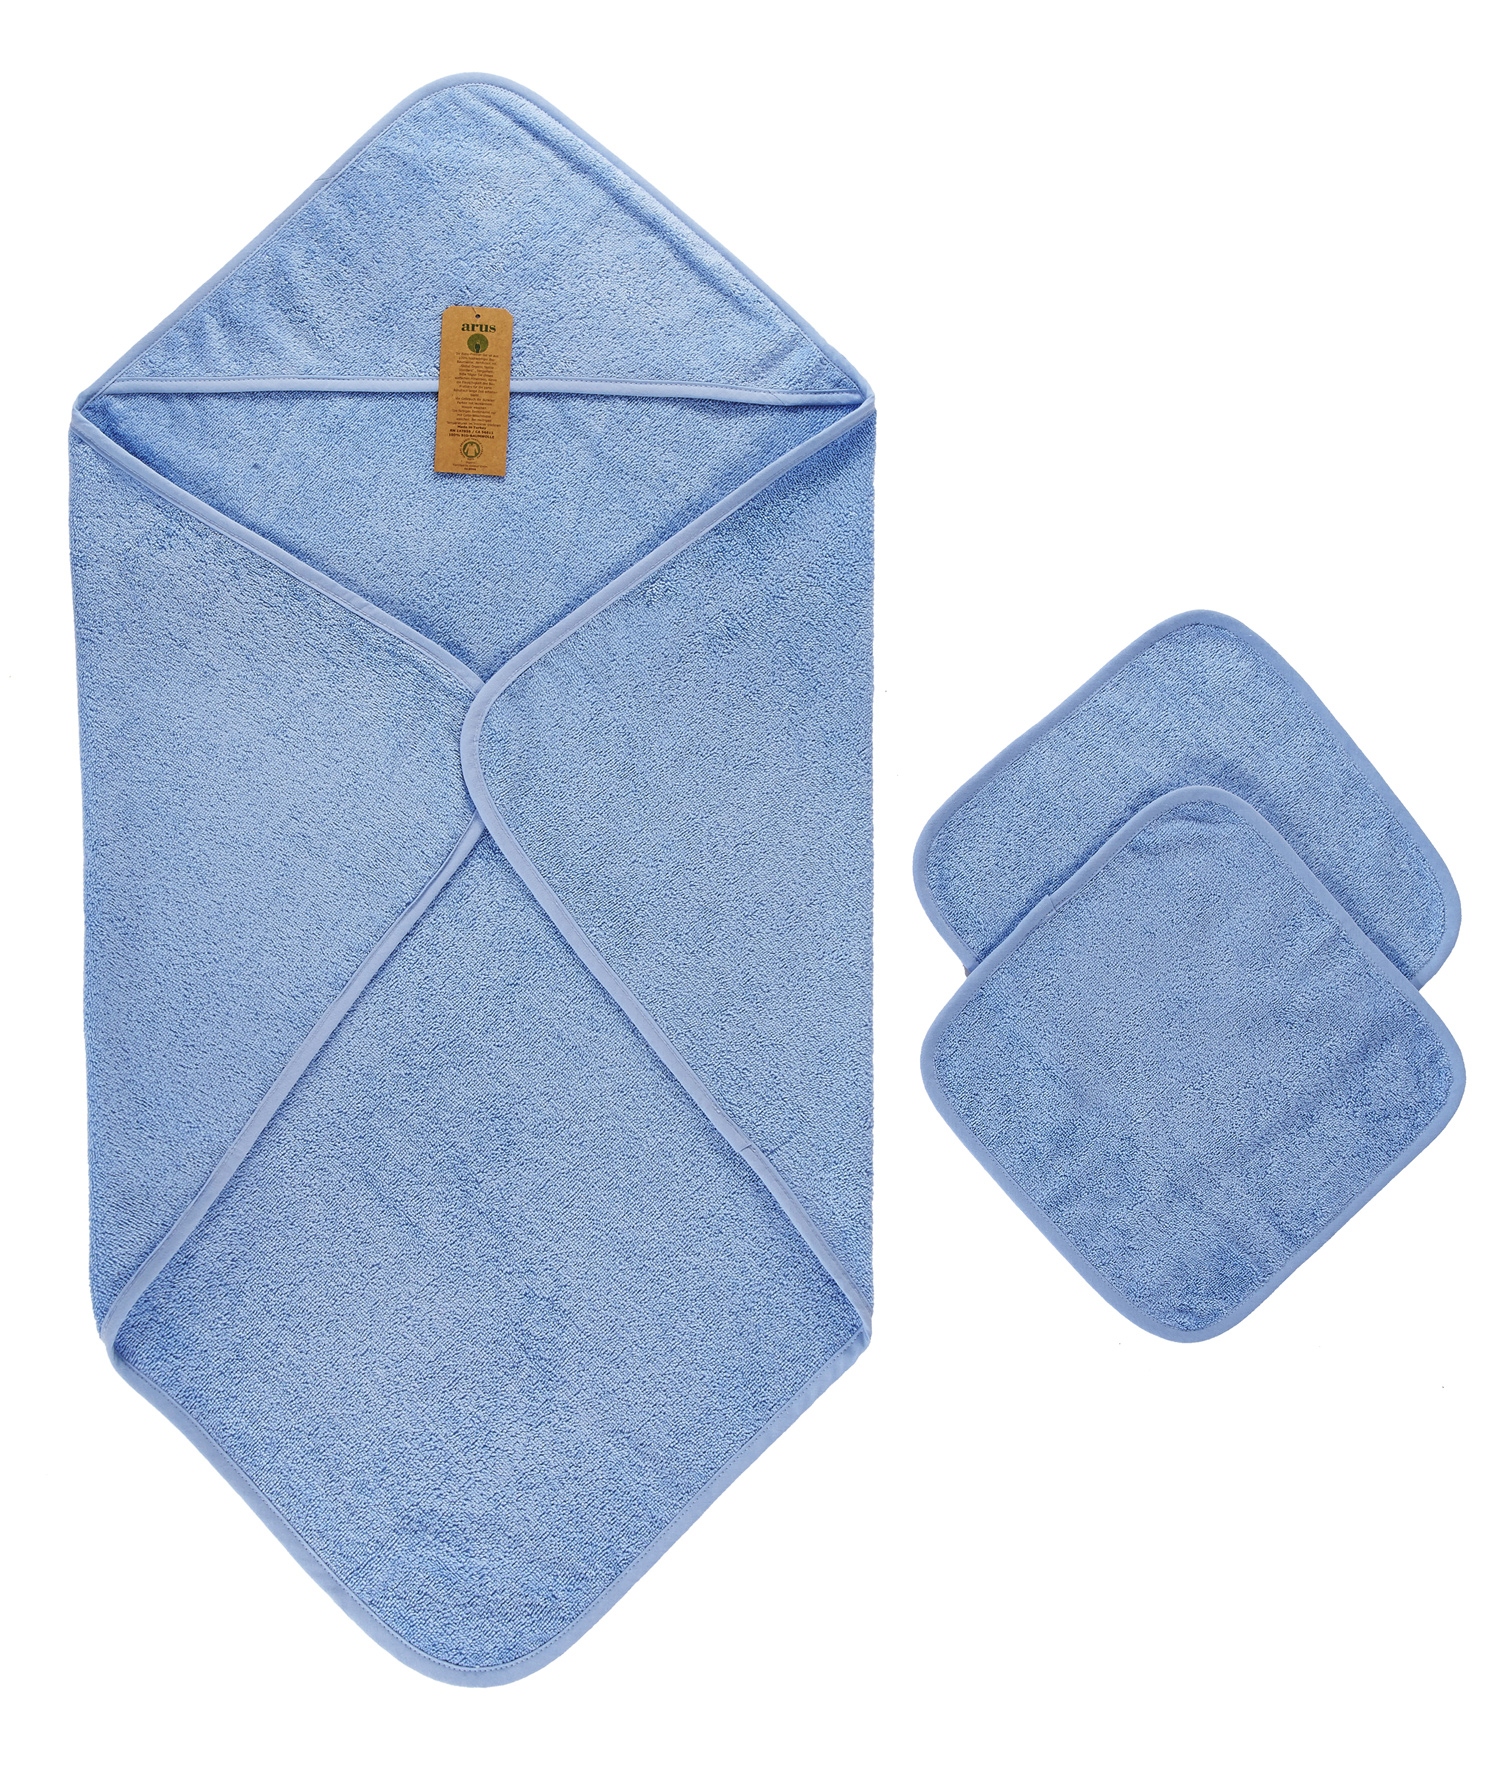 Baby Organic Turkish Cotton Hooded Towel and Washcloth Set by Arus